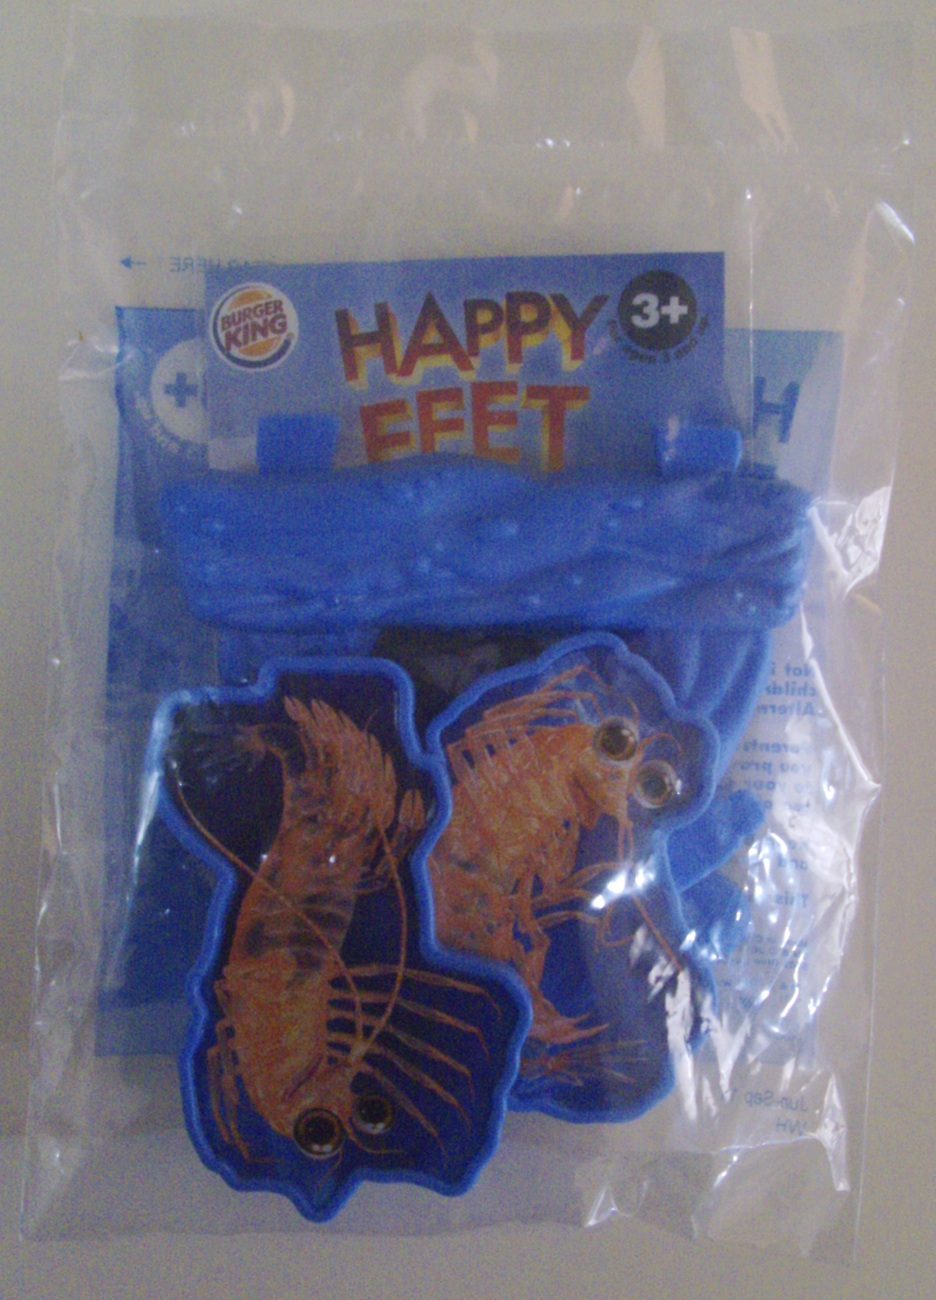 Happy Feet Two Lot of 3 Burger King Kid's Meal penguin toys - New